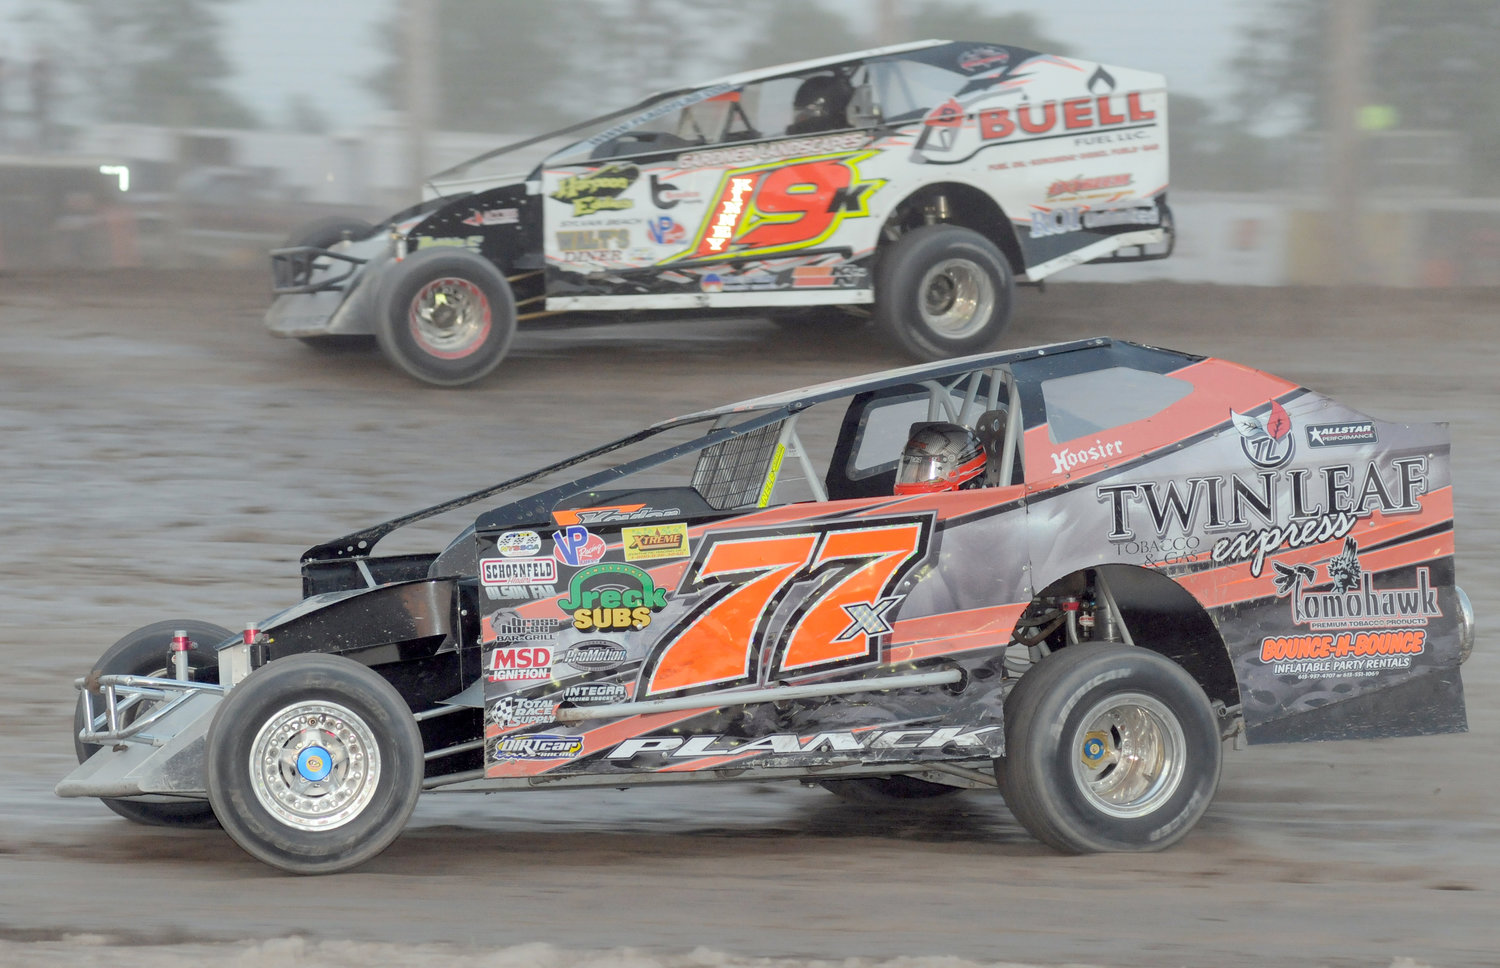 BACK IN THE SEAT — Dale Planck, 77x, races Oneida's Paul Kinney during a July 11, 2011 race at Utica-Rome Speedway. Planck's last full racing season was in 2013 but is set to race weekly at Fulton Speedway in 2019.